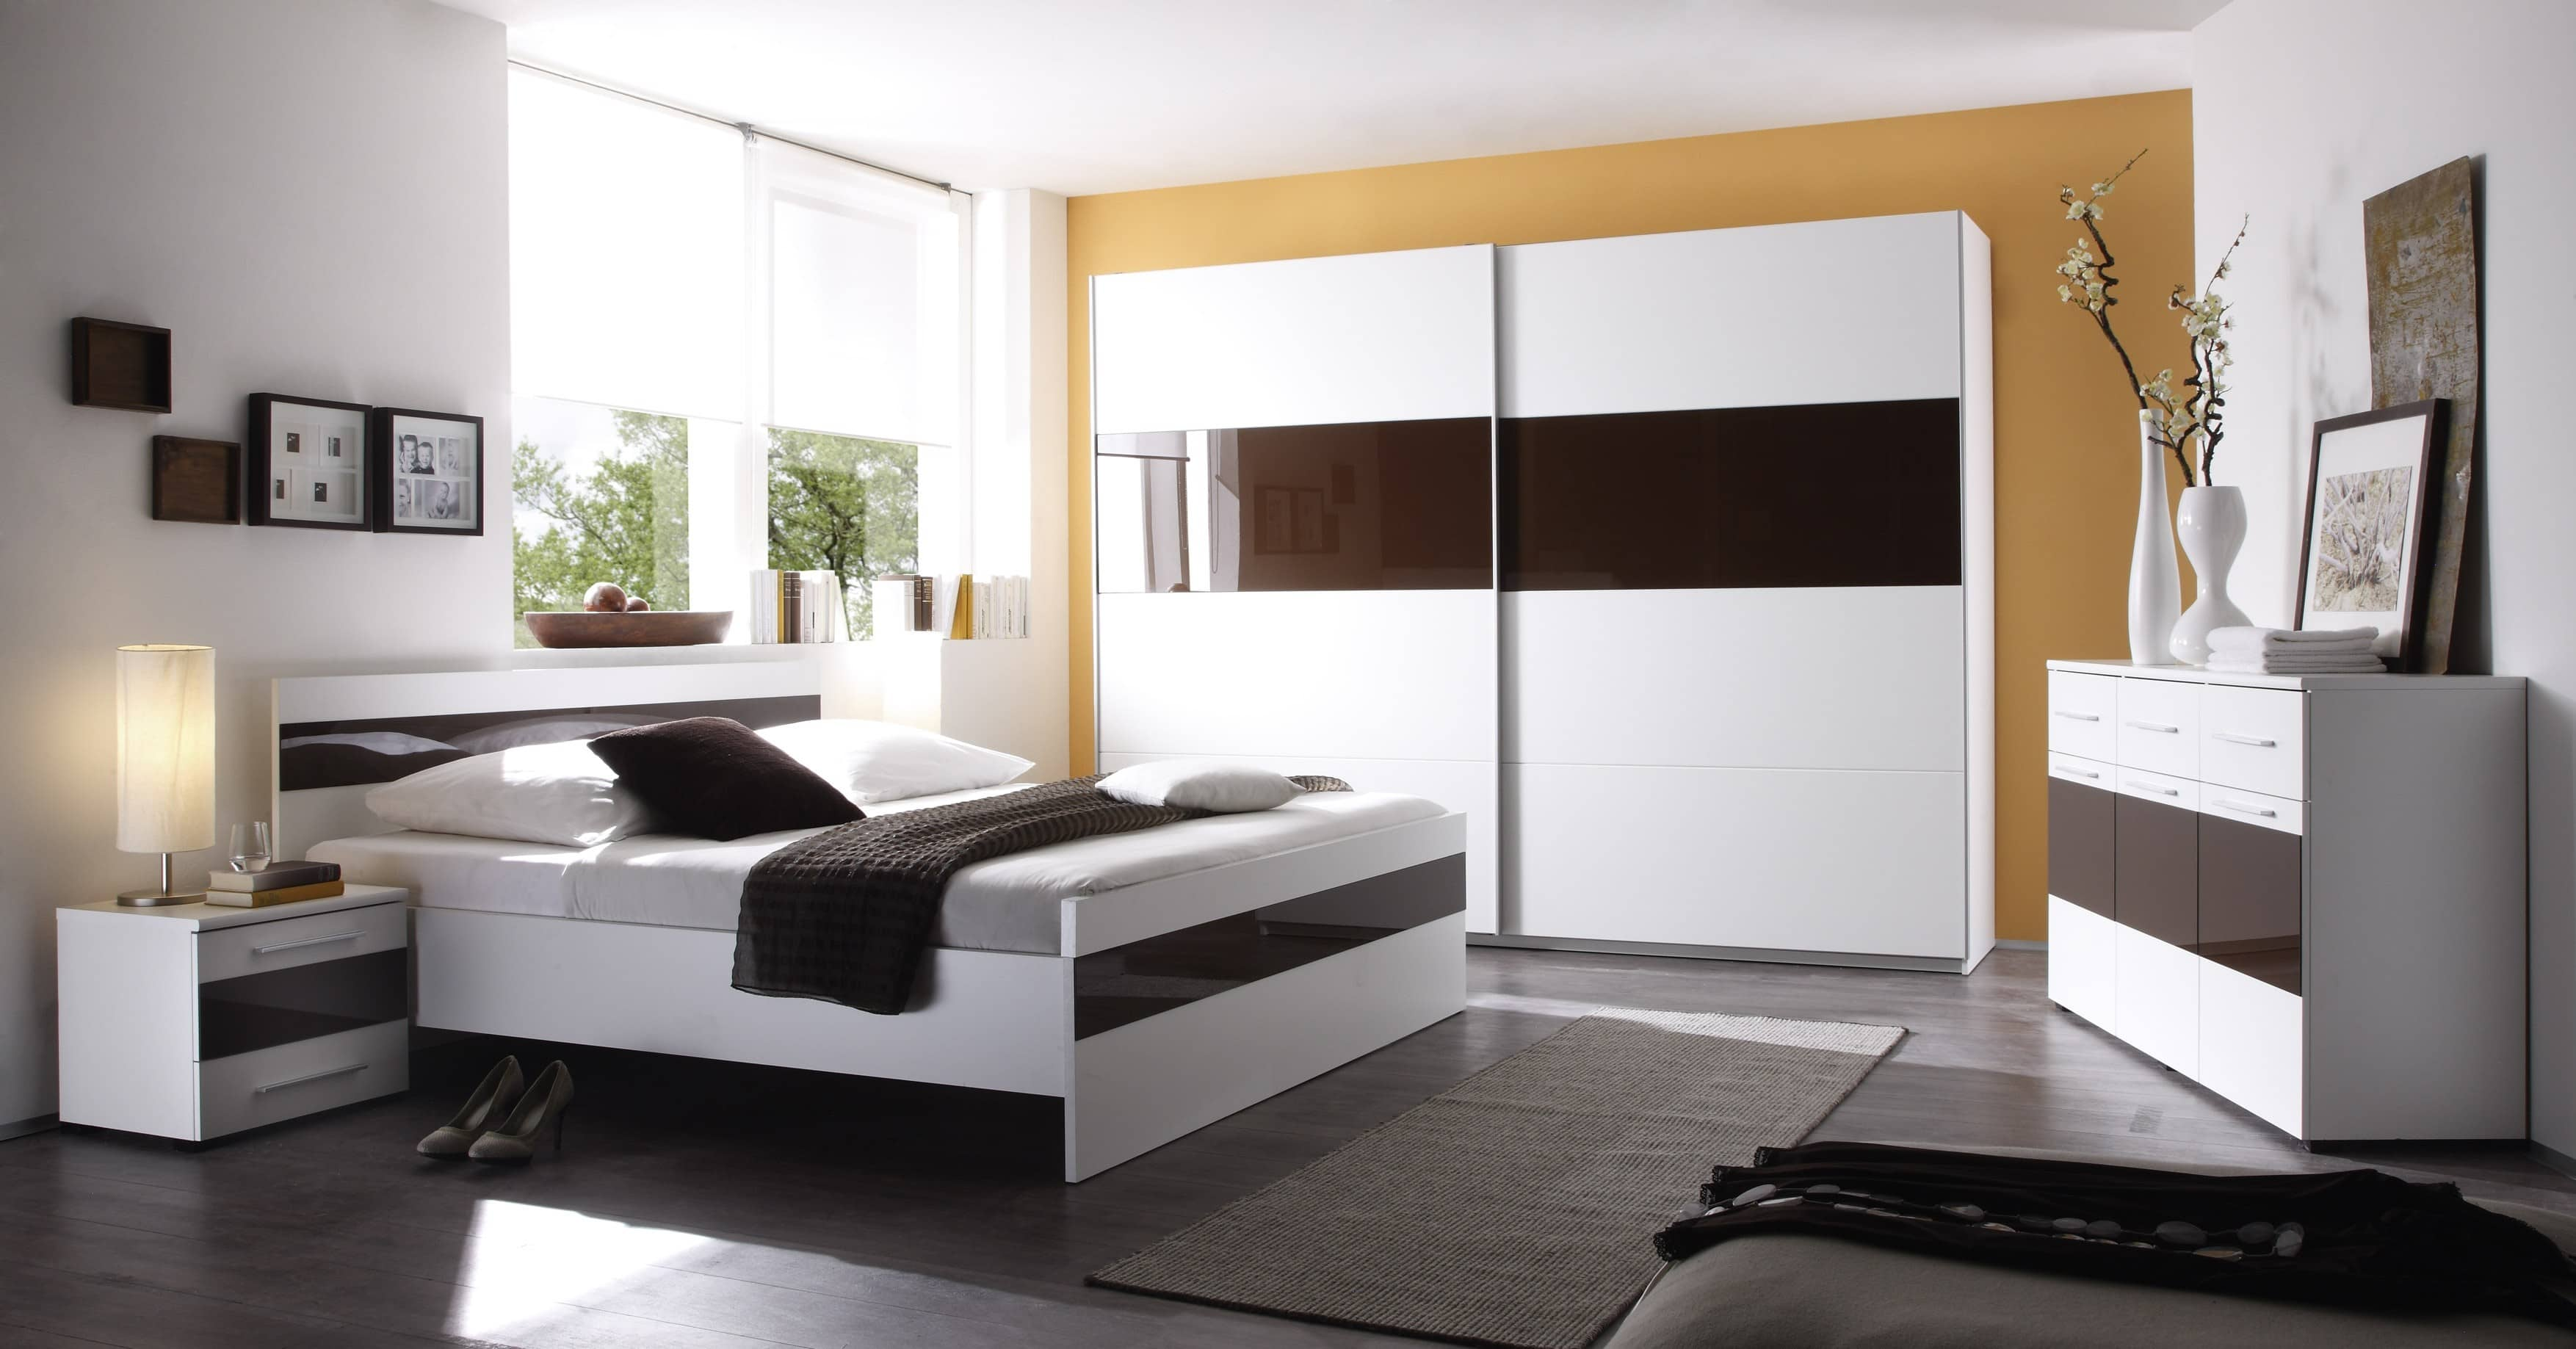 miroir de chambre conforama solutions pour la d coration. Black Bedroom Furniture Sets. Home Design Ideas